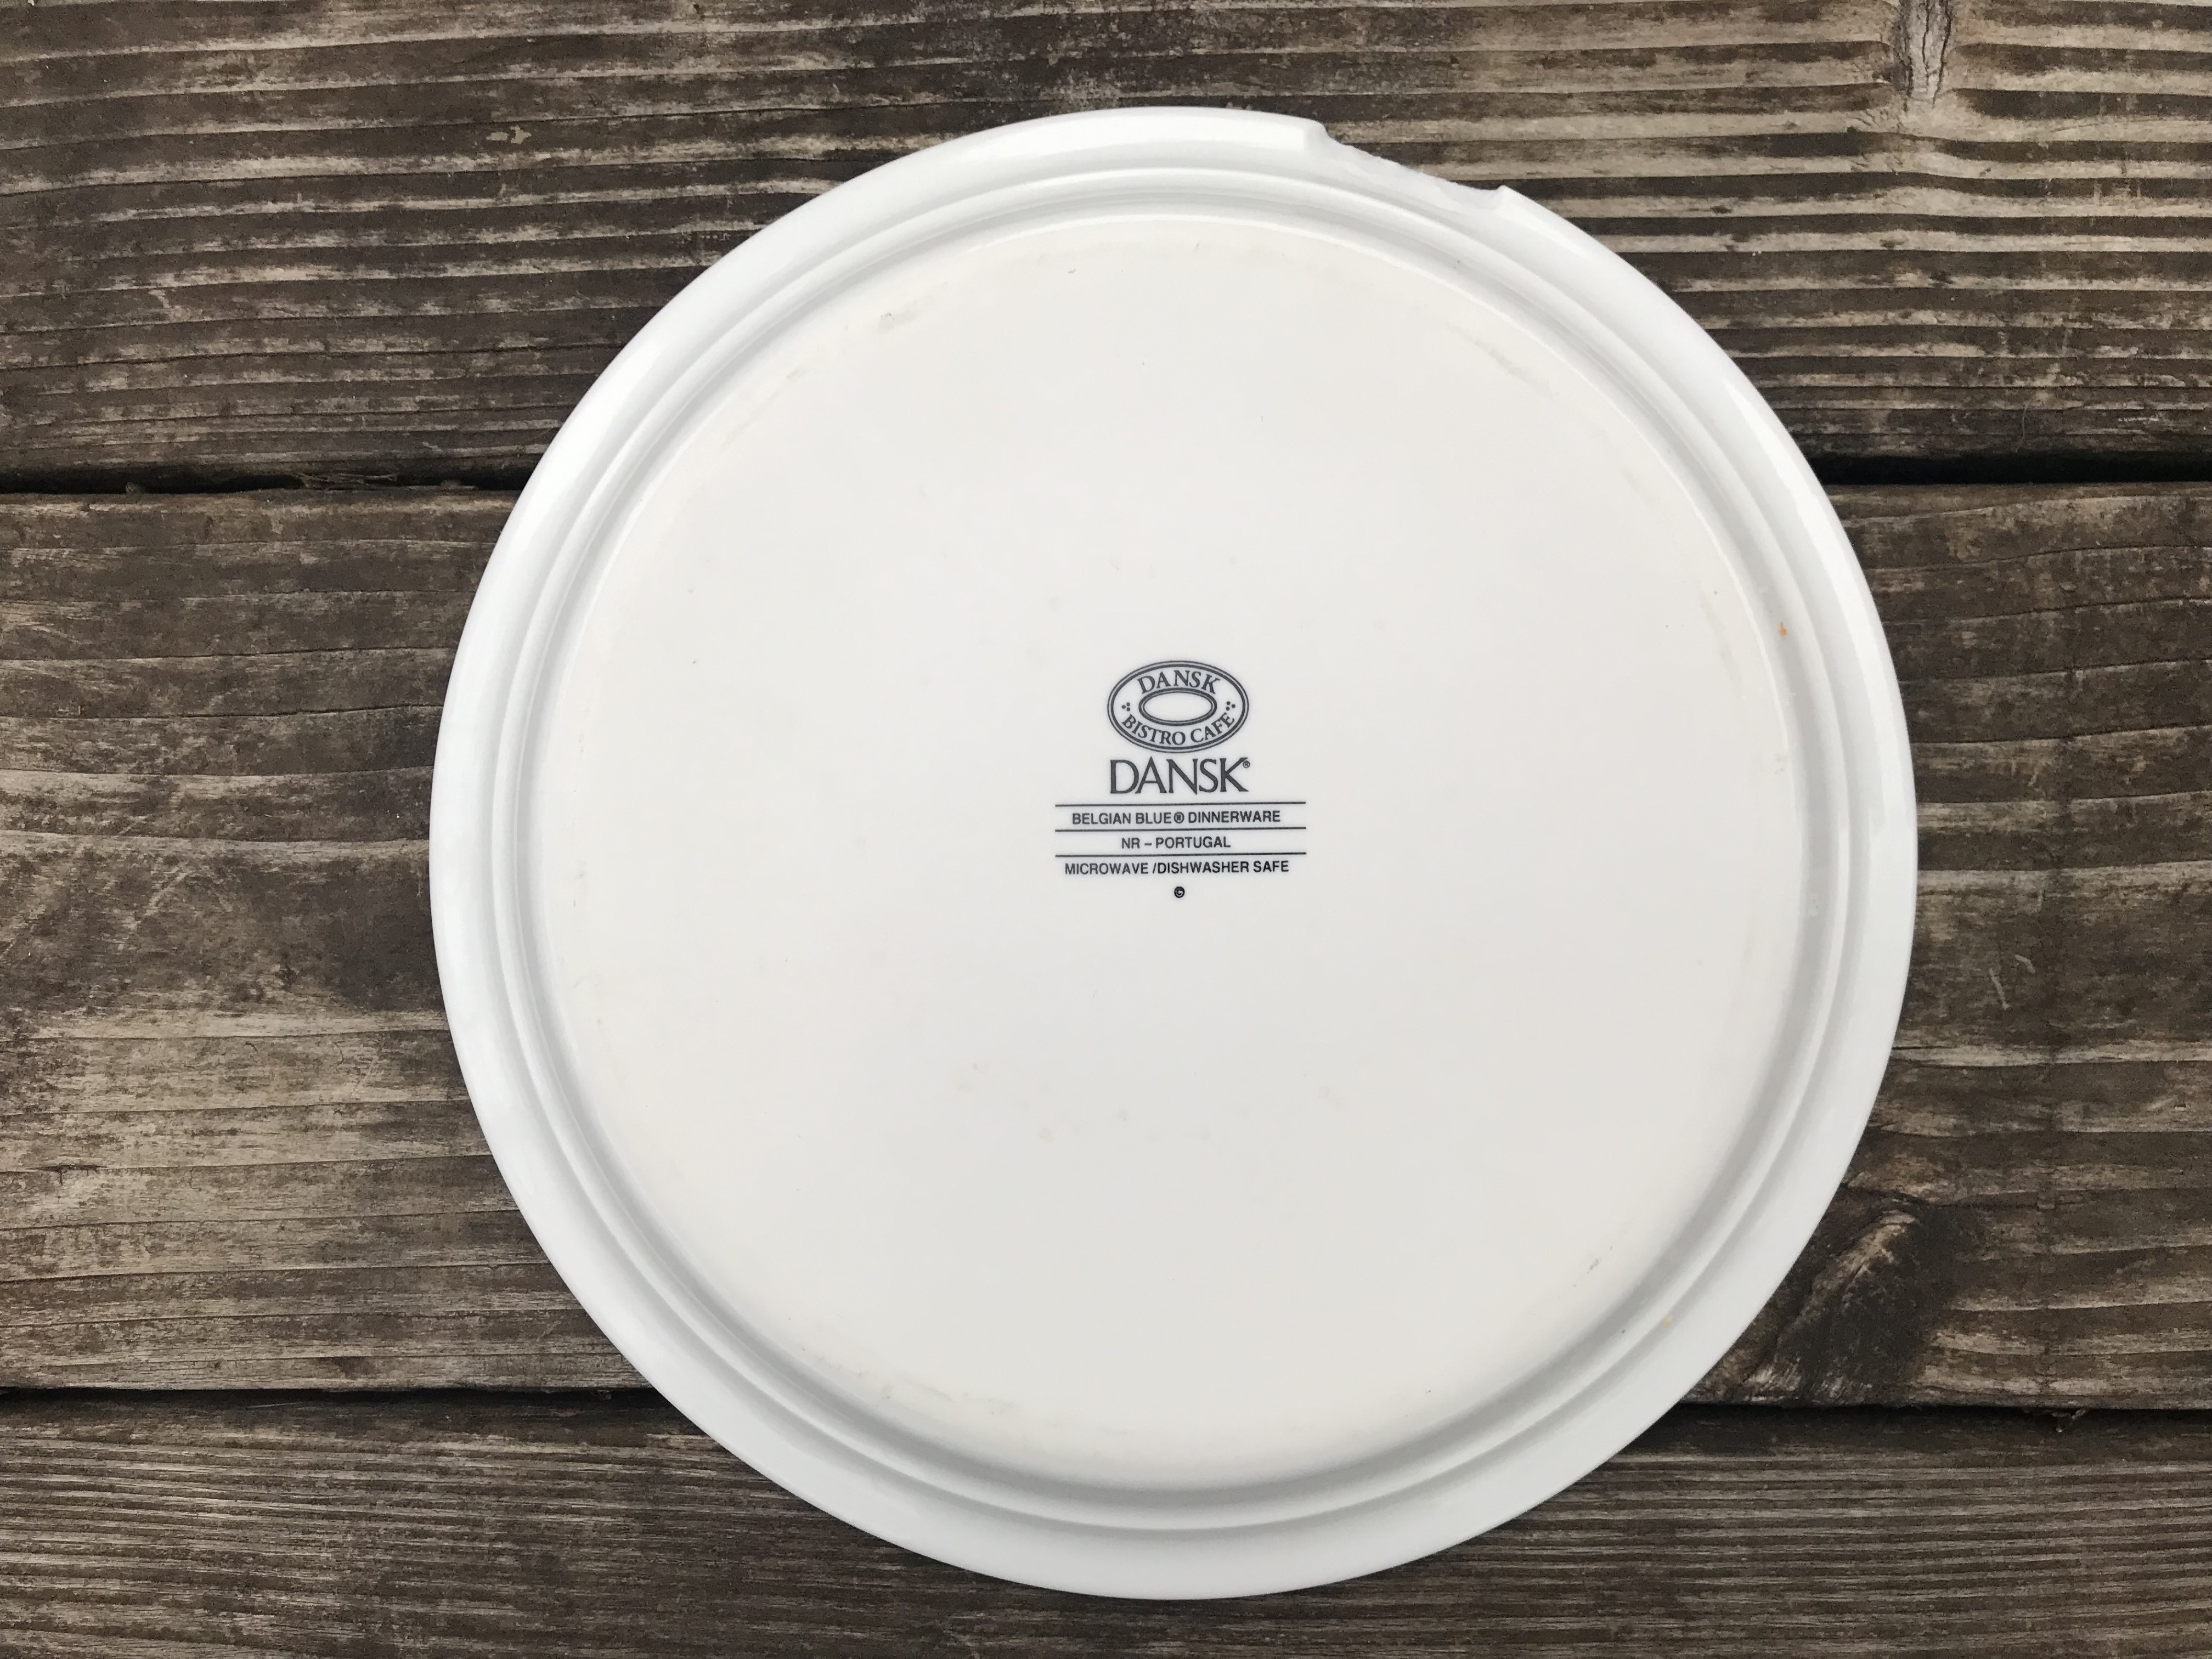 "Dansk ""Bistro Cafe"" Blue & White Pattern Ceramic Plate: 4,555 ppm Lead. [Context: 90 ppm Lead is considered unsafe in new items for kids.]"